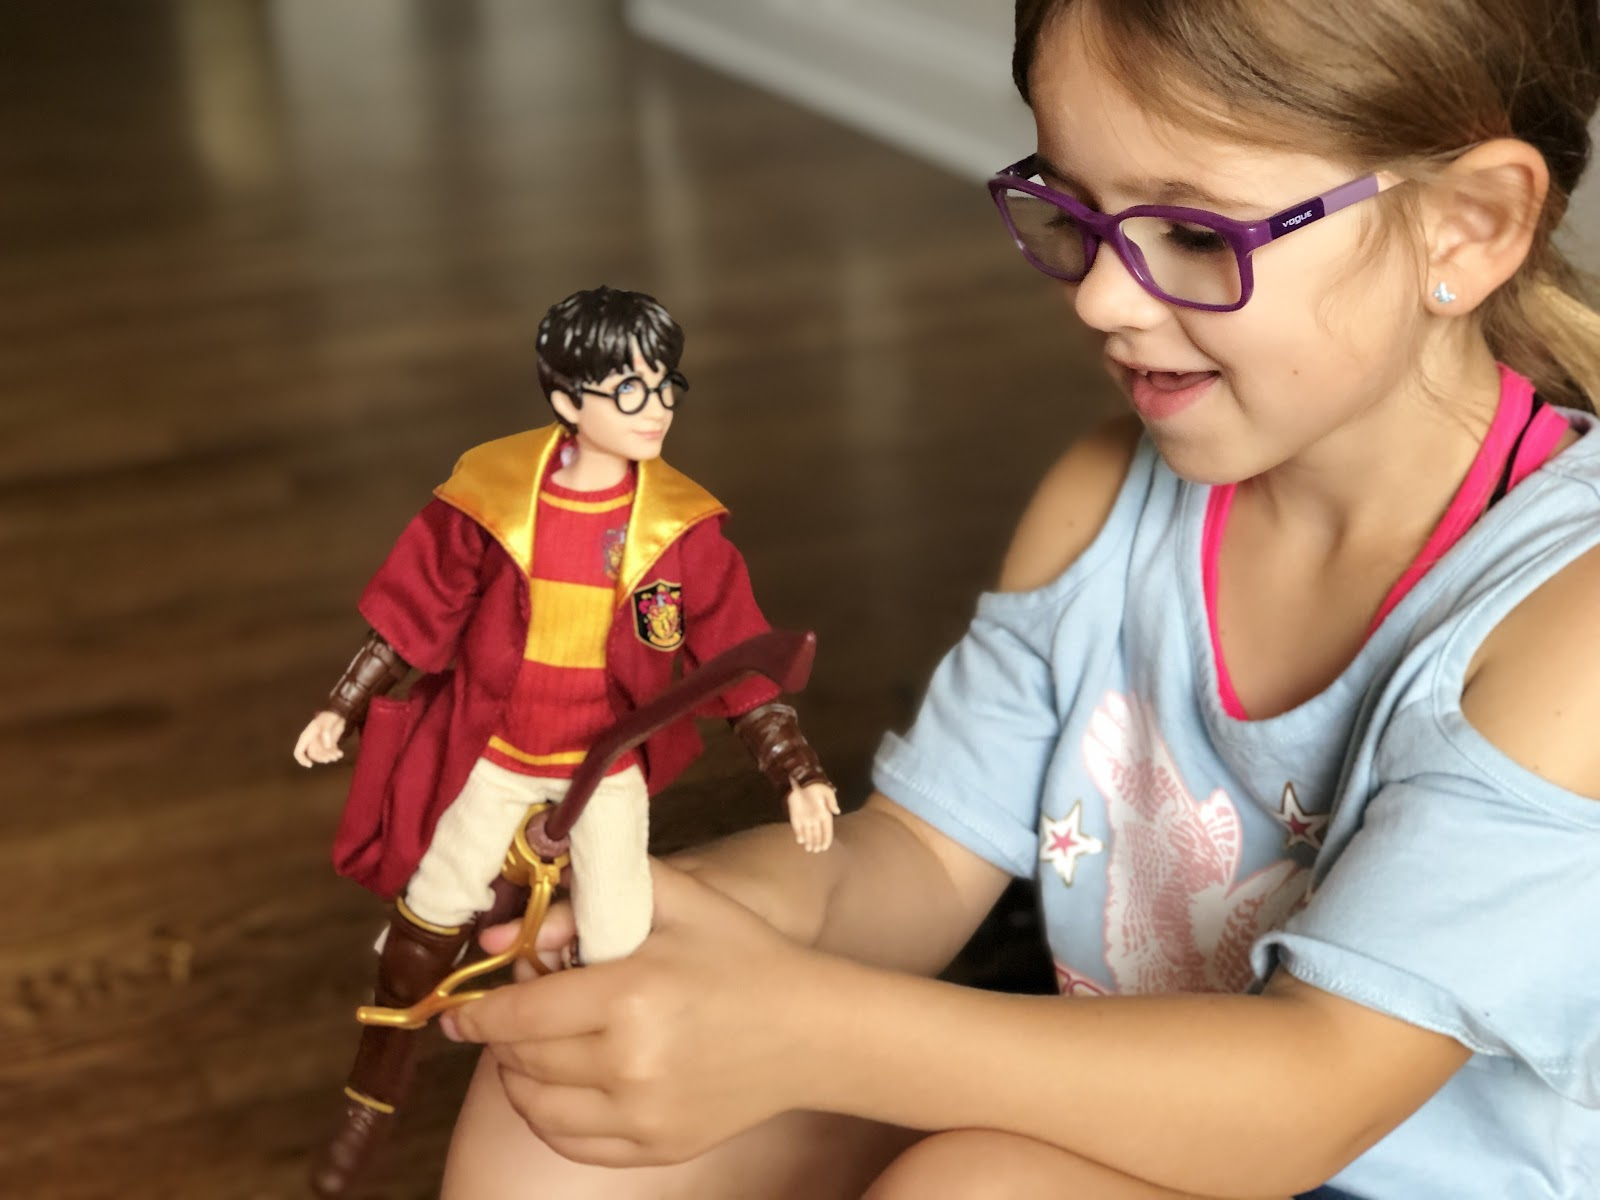 A girl playing with a Harry Potter action figure.